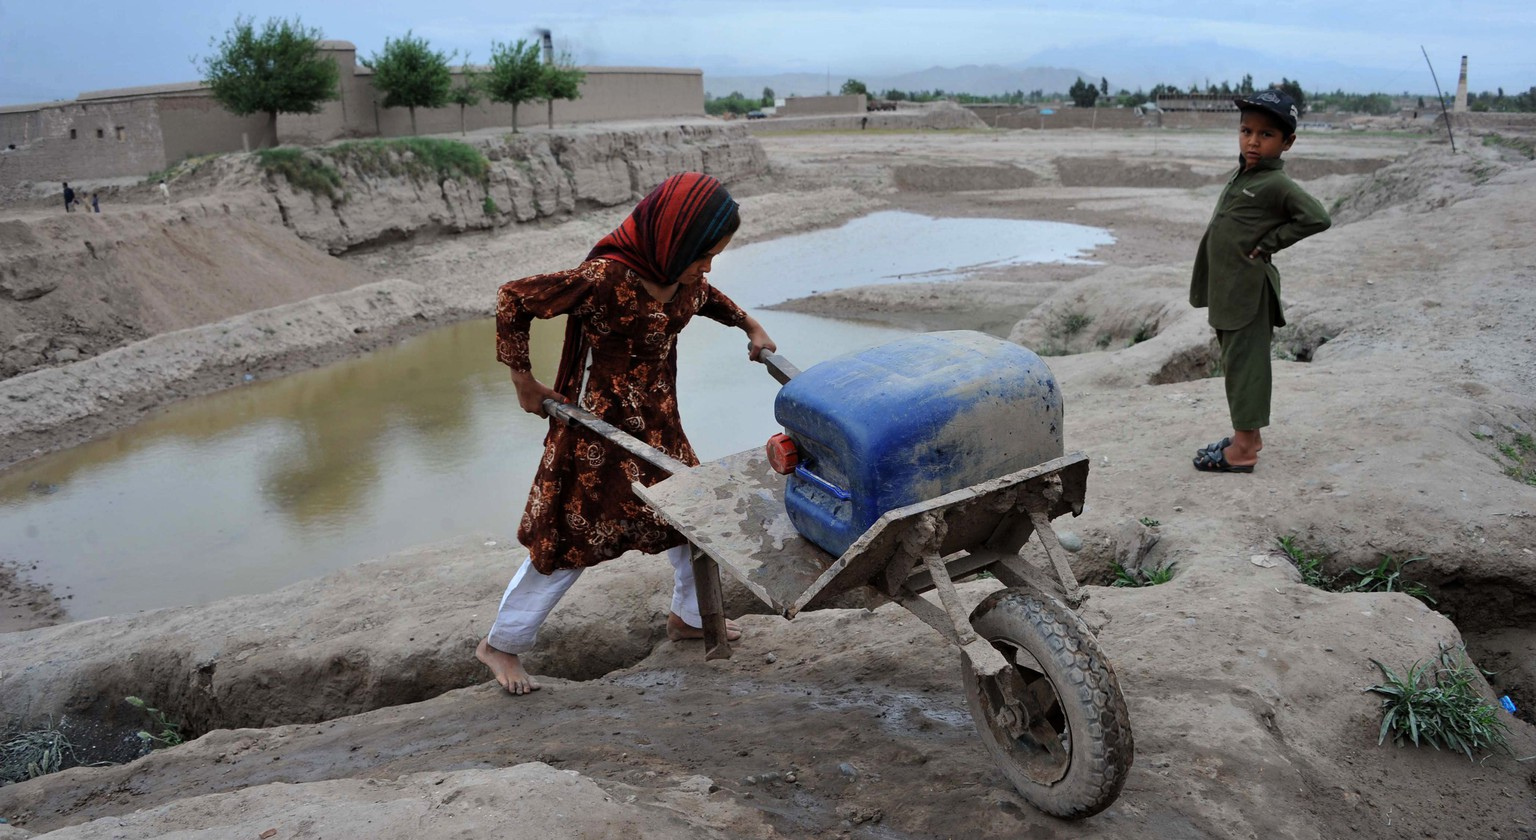 An Afghan child uses a wheelbarrow to transport a water container through the temporary settelment where she lives on the outskirts of Jalalabad on May 8, 2014. Afghanistan's economy is recovering from decades of conflict but despite the significant improvement in the last decade it is extremely poor, and highly dependent on foreign aid.  AFP PHOTO / Noorullah SHIRZADA